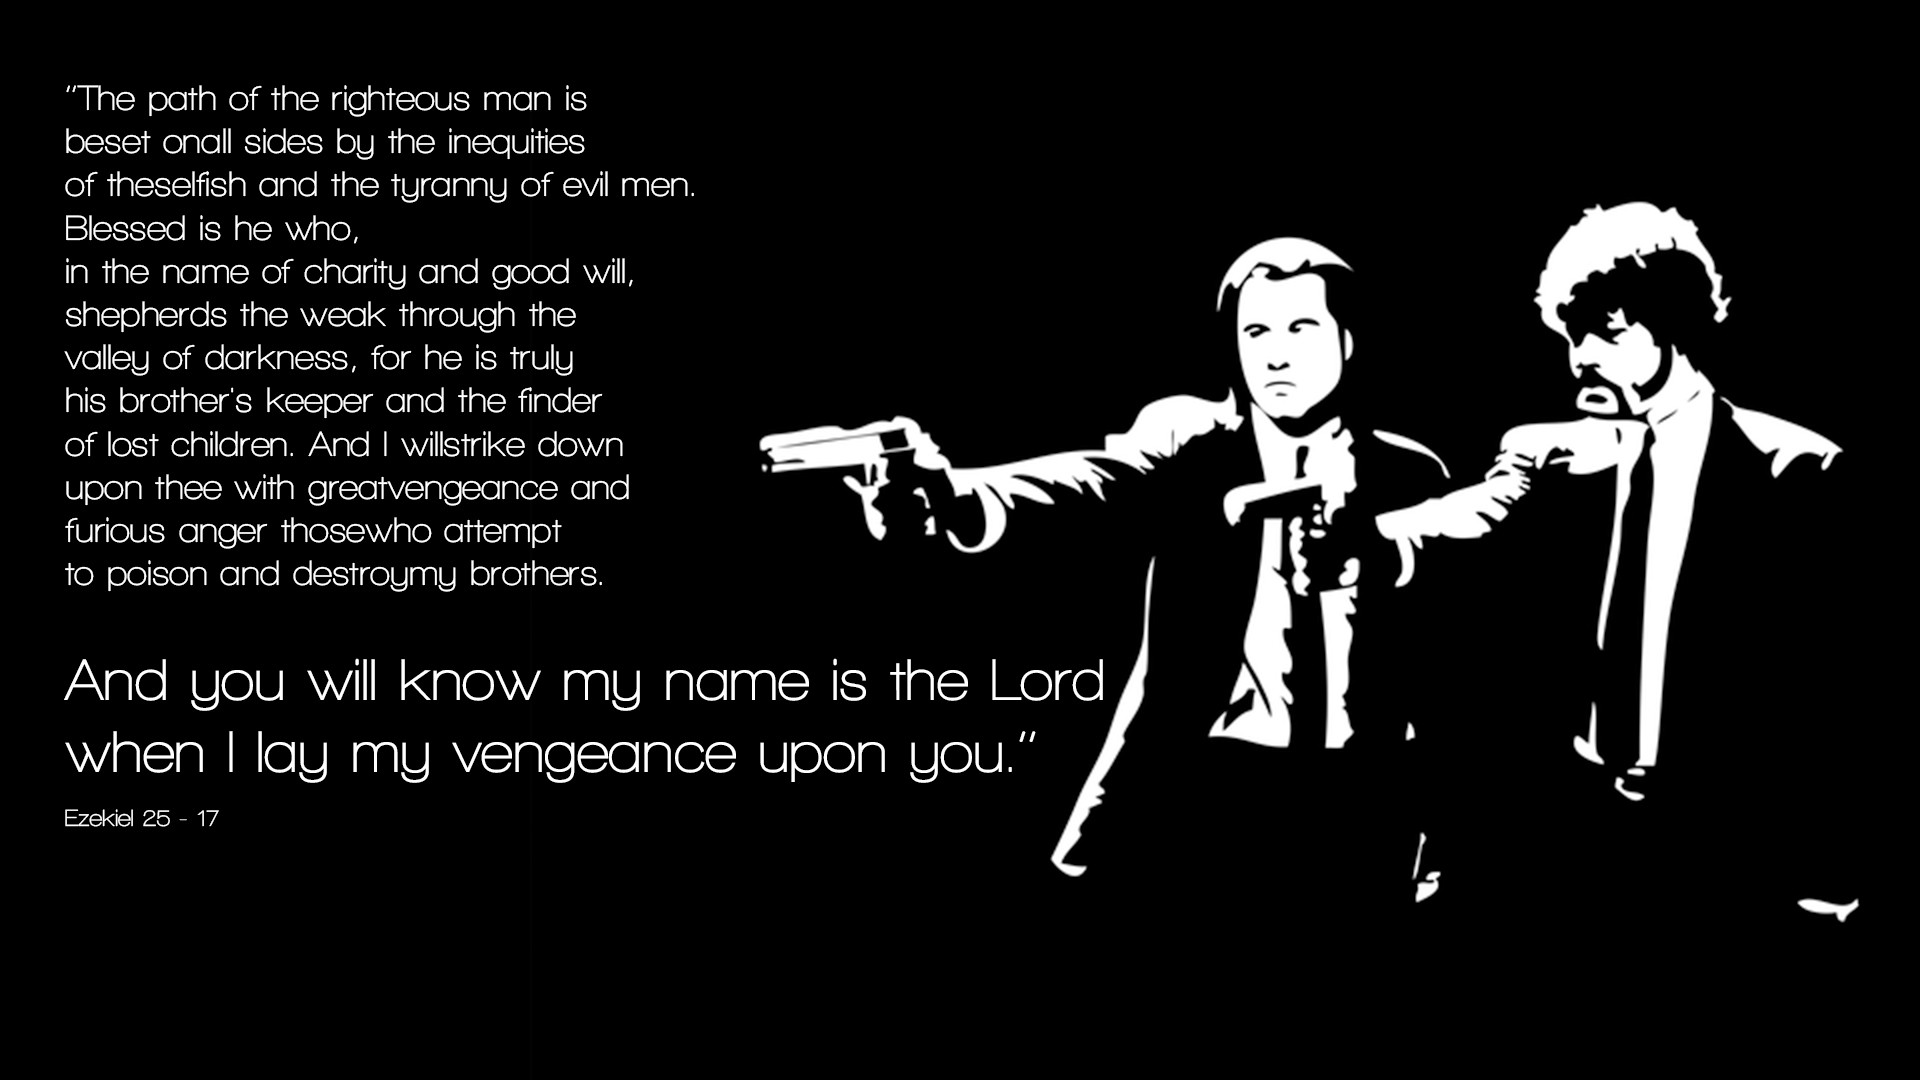 pulp fiction wallpaper 1920x1080 pulp, fiction, quotes, bible, ezekiel